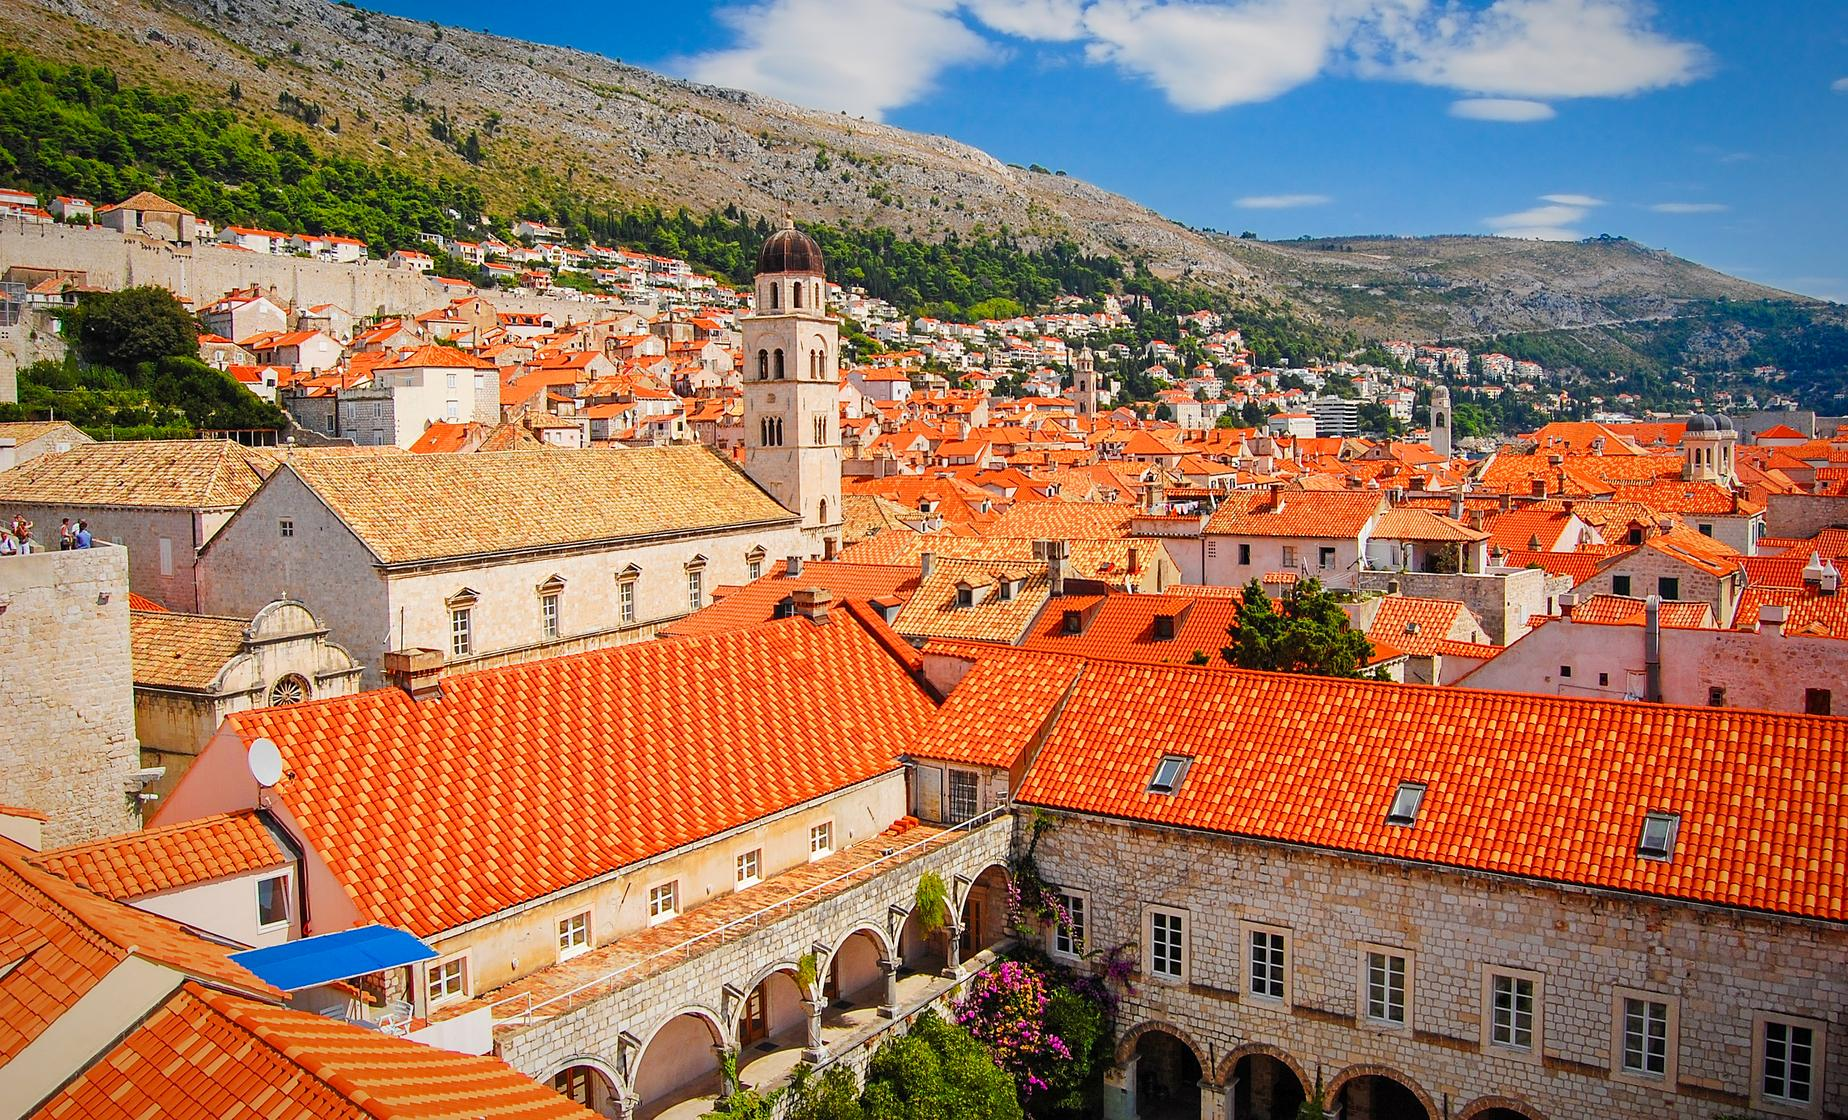 Highlights of Dubrovnik